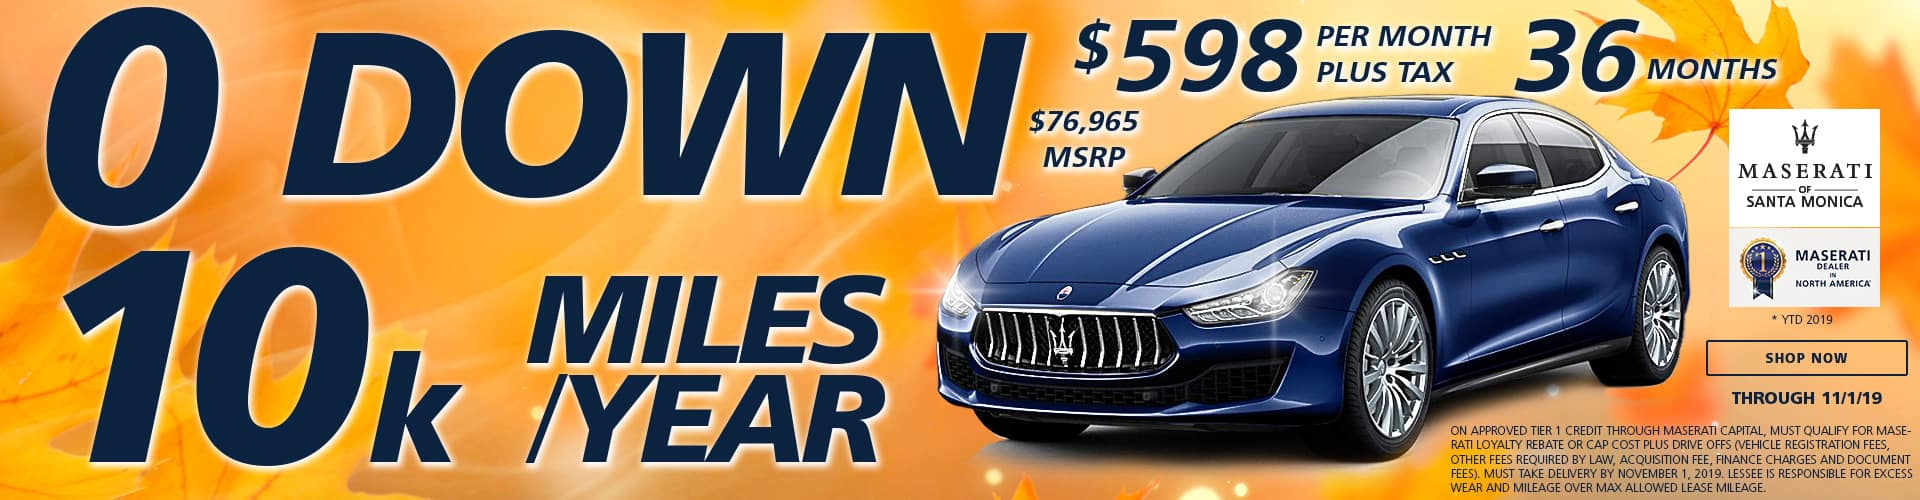 *Ghibli $0 Zero Down and 10,000 miles per year lease special special. $598 per month plus tax for 36 months on a $76,965 MSRP. On approved tier 1 credit through Maserati capital, must qualify for Maserati loyalty rebate or cap cost plus drive offs (vehicle registration fees, other fees required by law, acquisition fee, finance charges and document fees). Must take delivery by November 1, 2019. Lessee is responsible for excess wear and mileage over max allowed lease mileage.